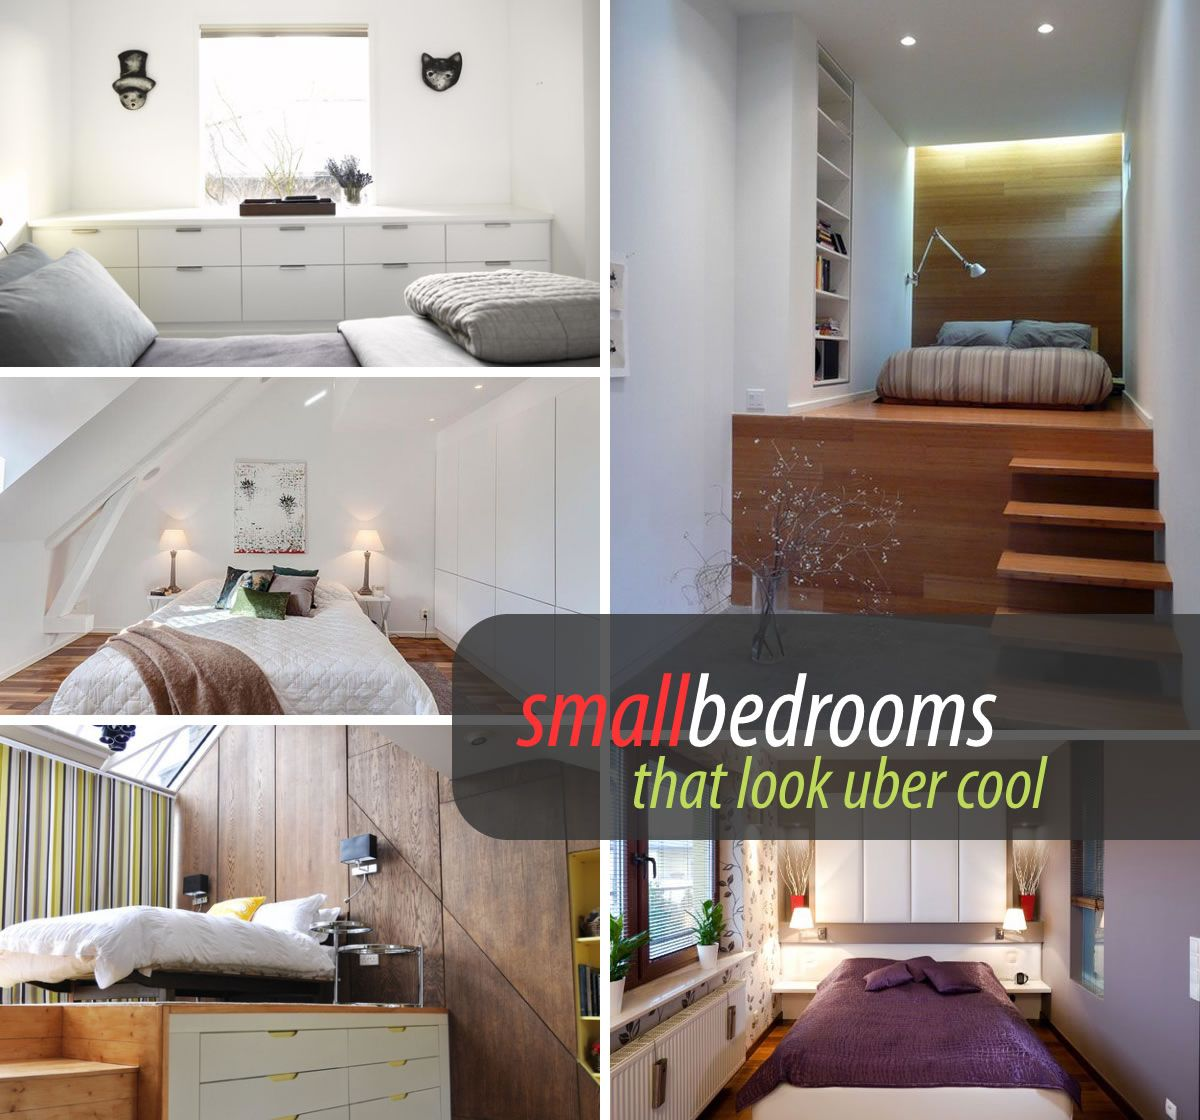 how many years is interior design - 1000+ images about Bedroom on Pinterest Small bedroom designs ...